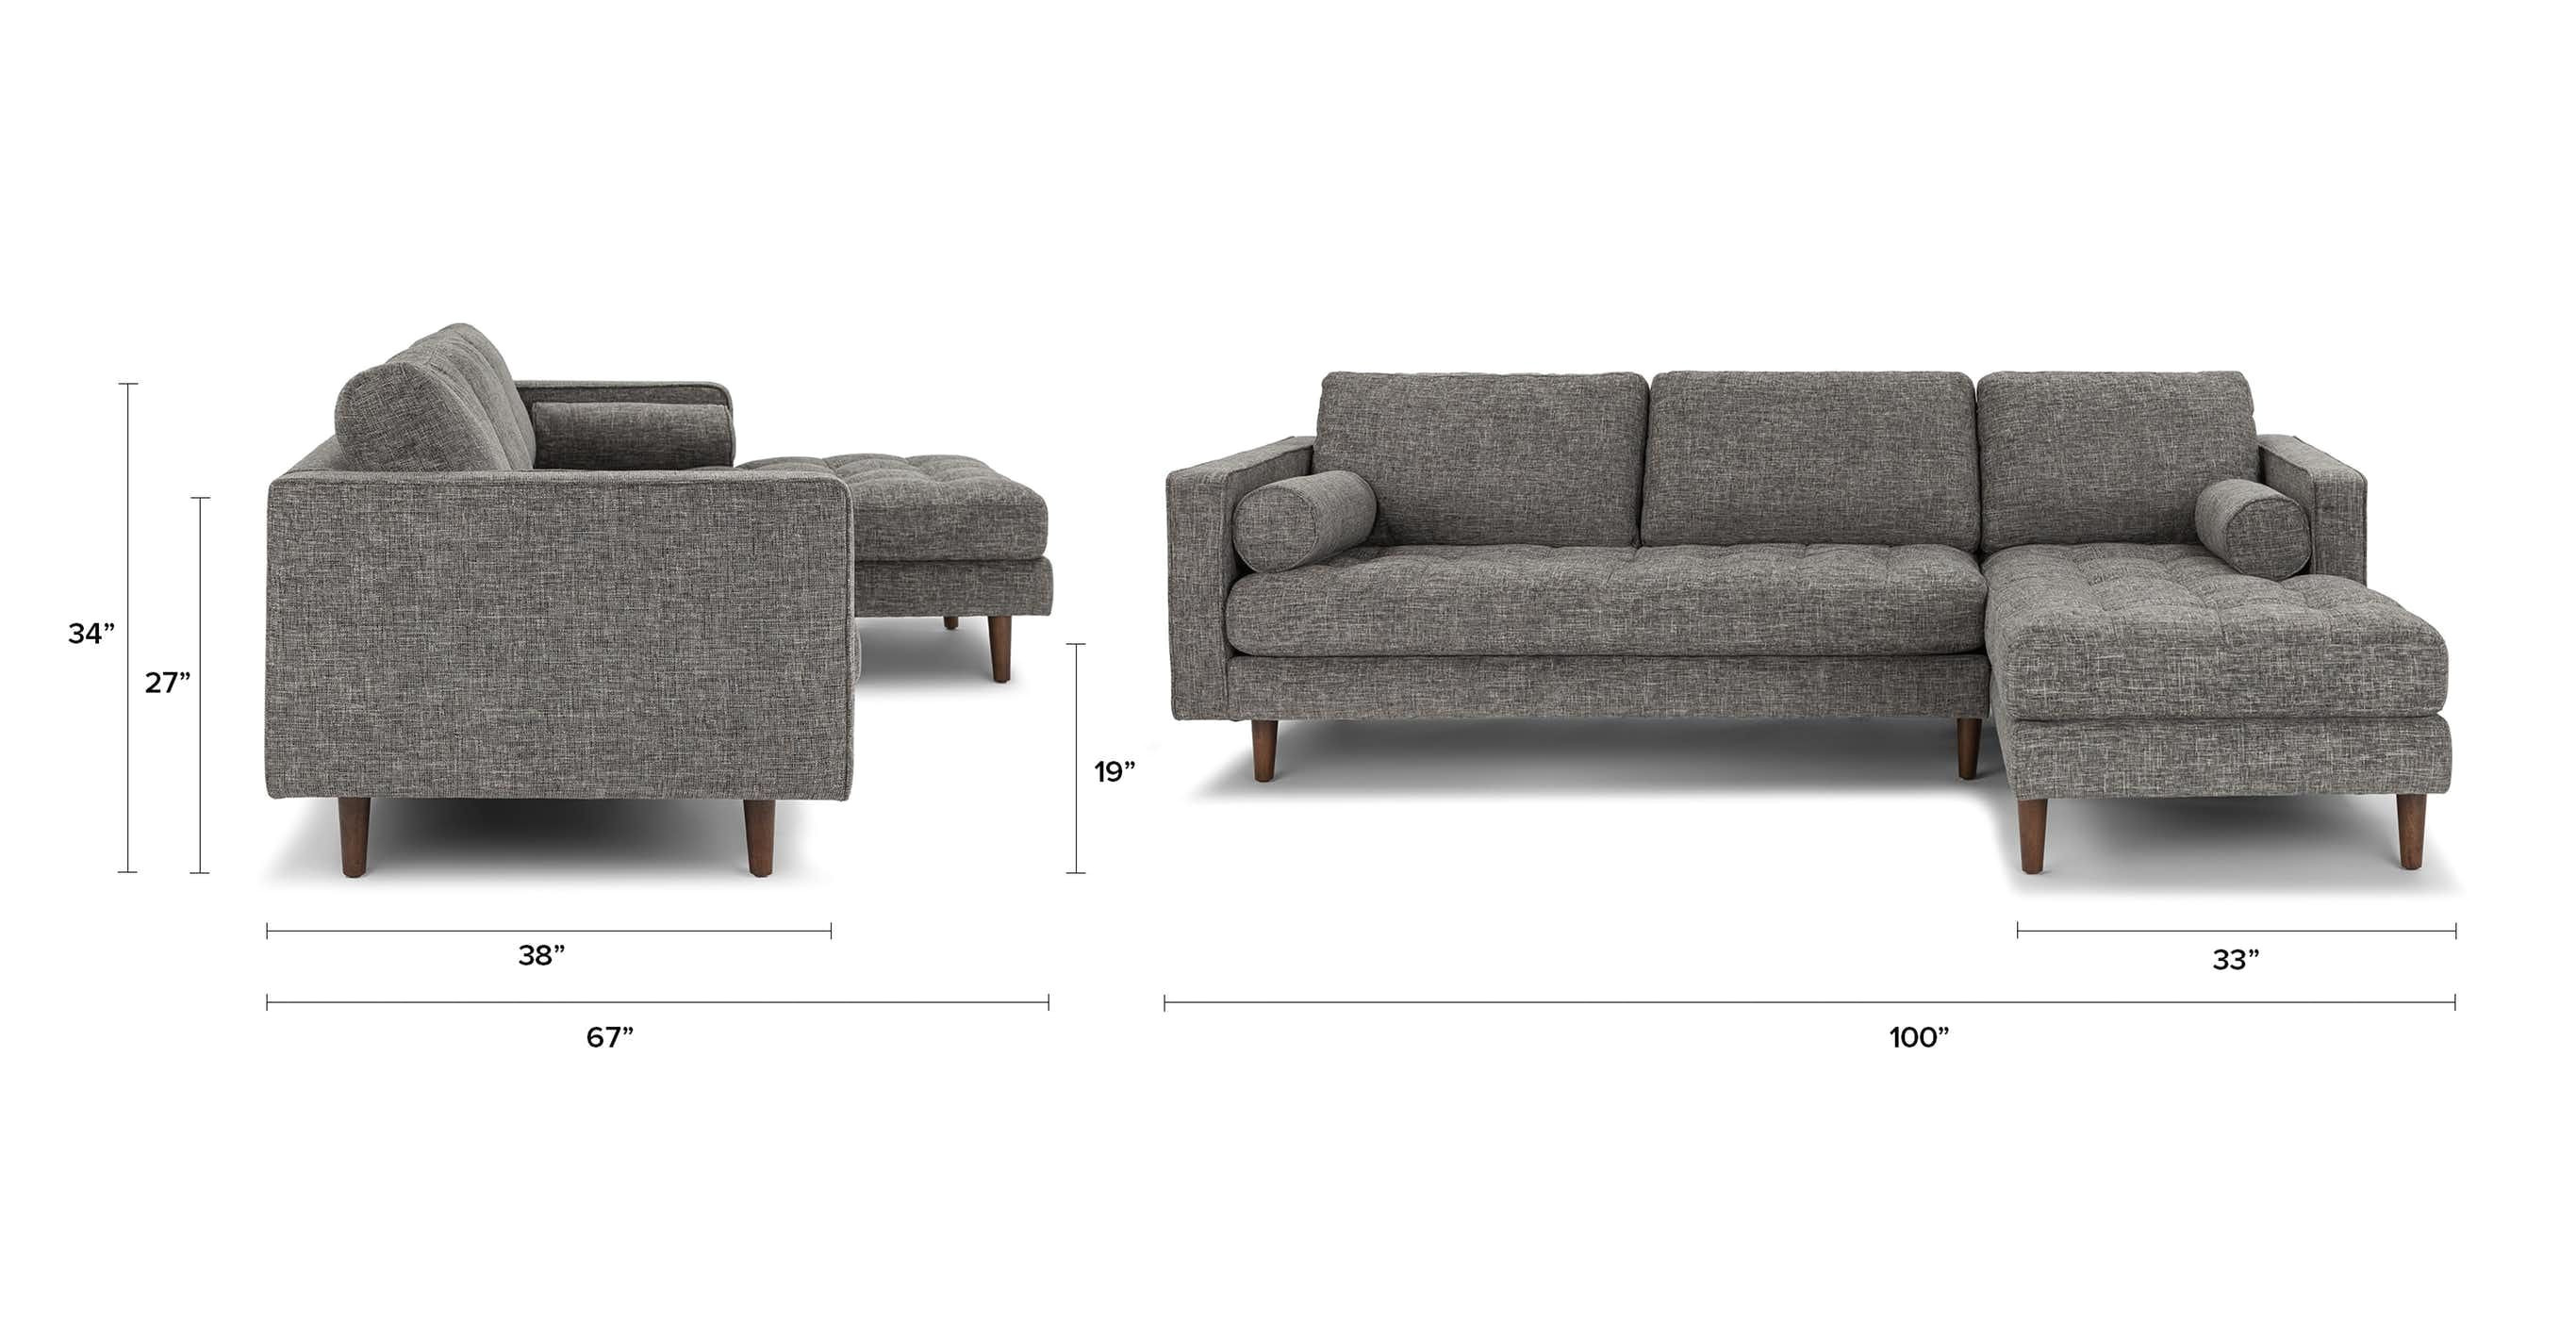 90 Inch Sectional Sofa Gray Right Sectional Sofa Tufted Article Sven